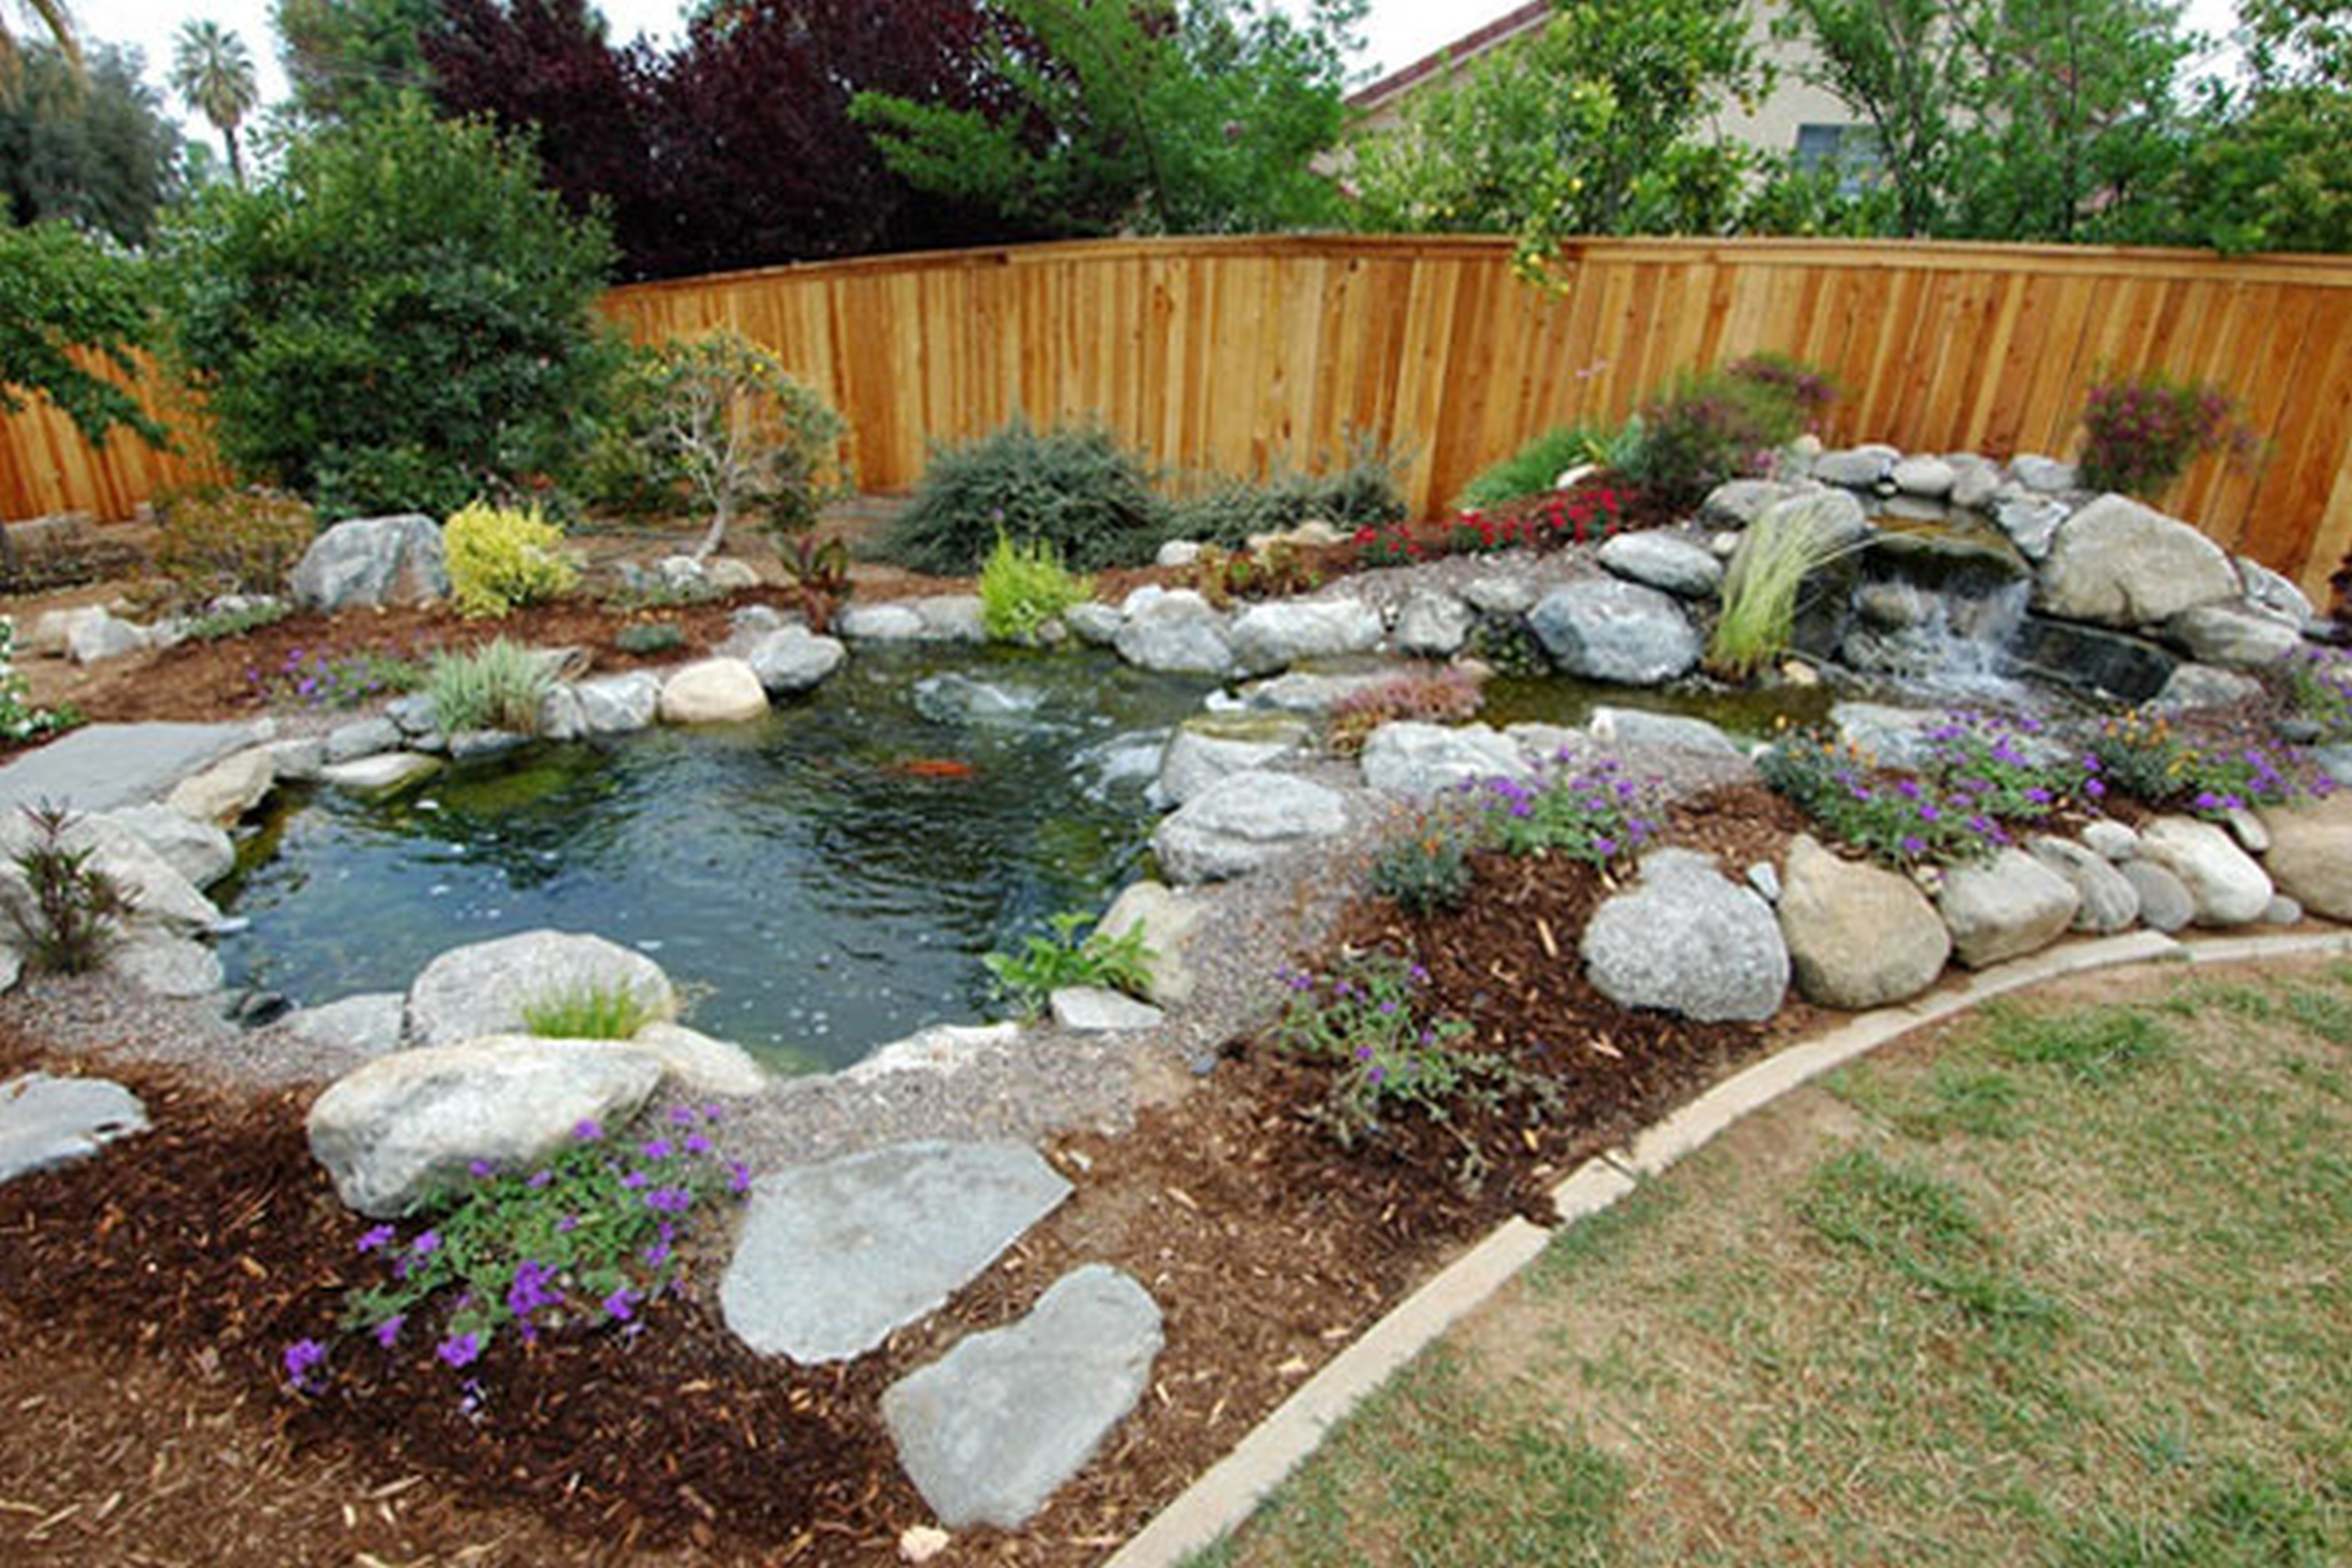 Backyard fire pit ideas landscaping backyard for Backyard fish pond designs